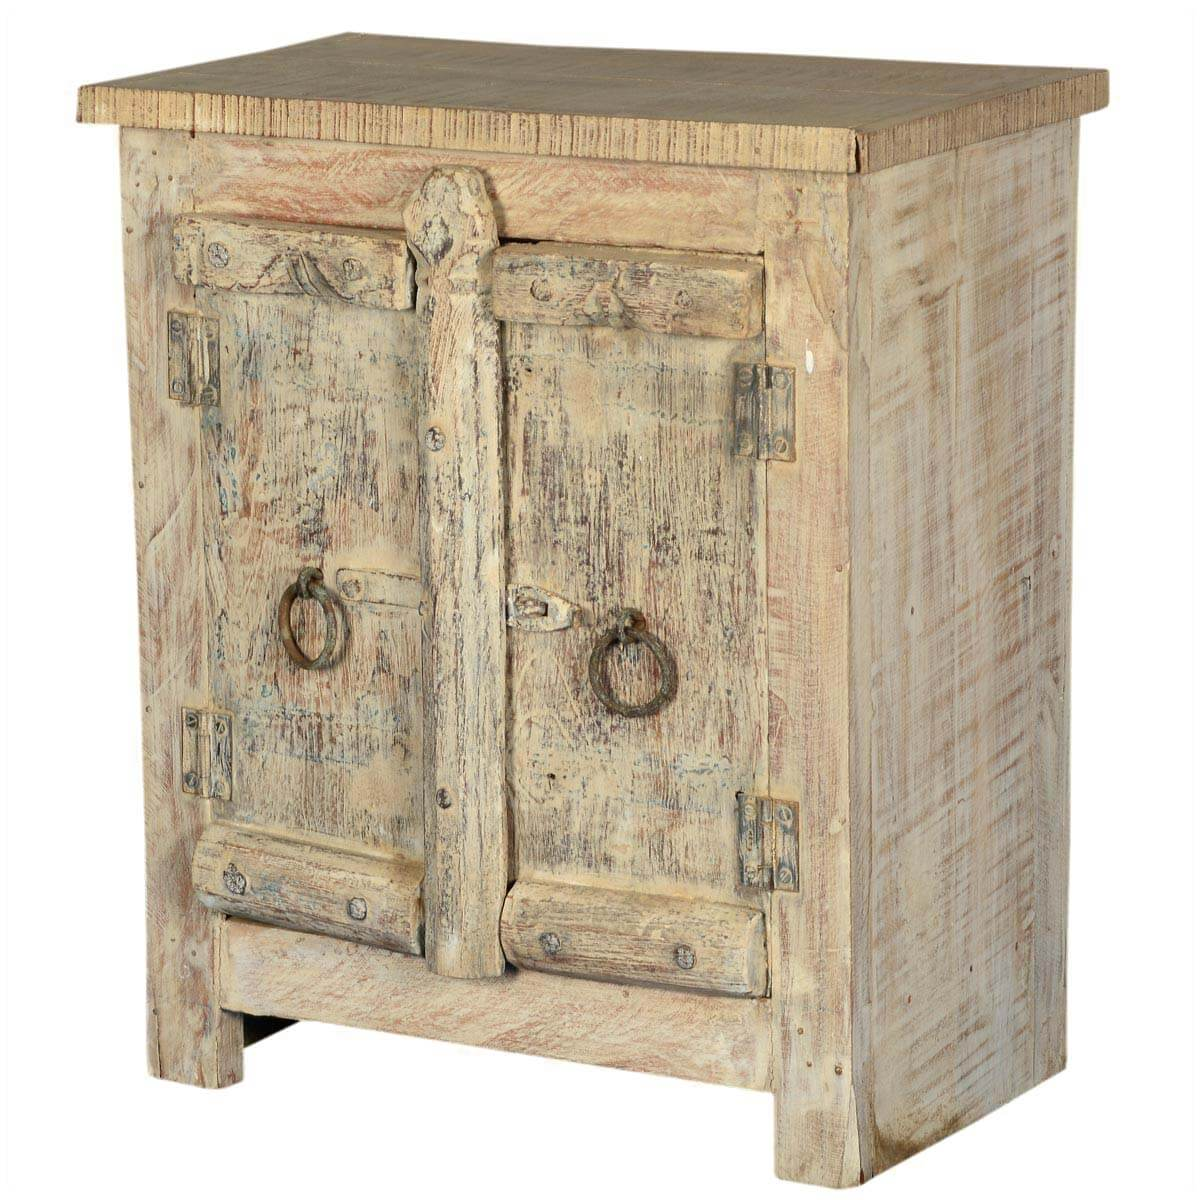 amish 2 door old wood small rustic accent end table storage cabinet. Black Bedroom Furniture Sets. Home Design Ideas